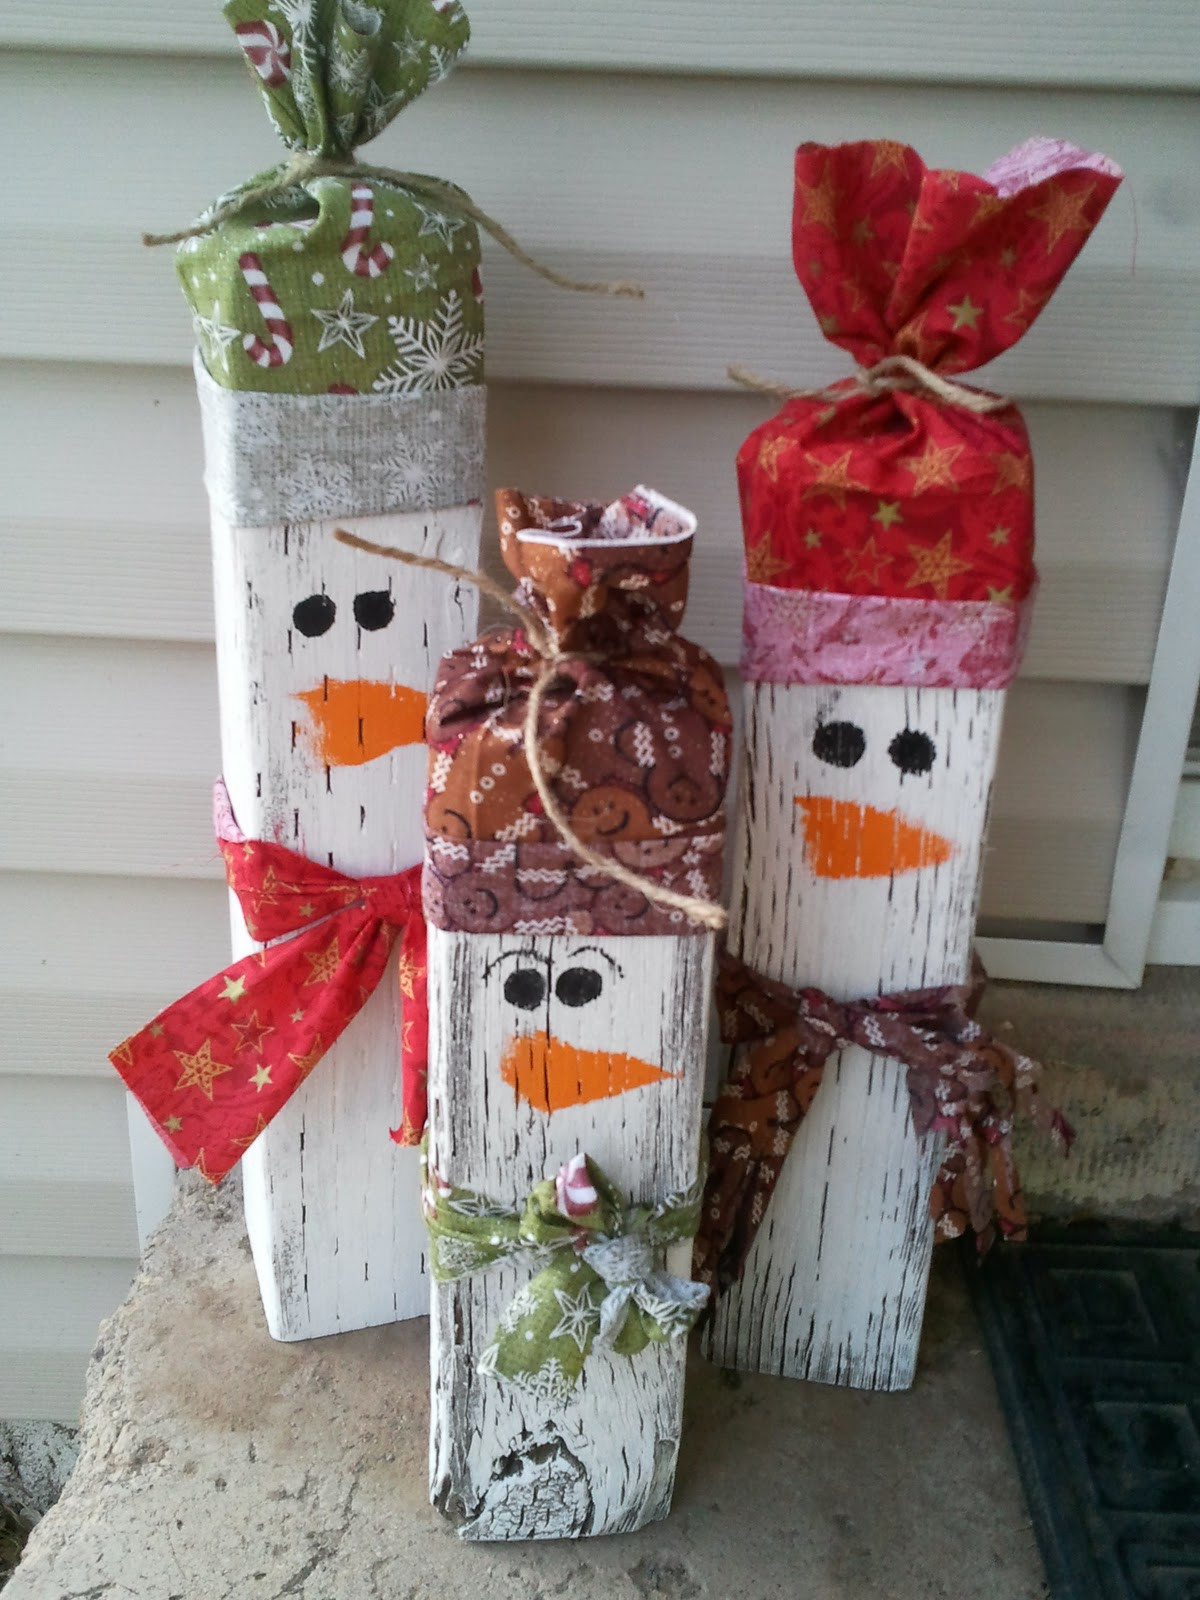 Best ideas about DIY Christmas Decor . Save or Pin Always Something 10 DIY Christmas Decor Ideas Now.